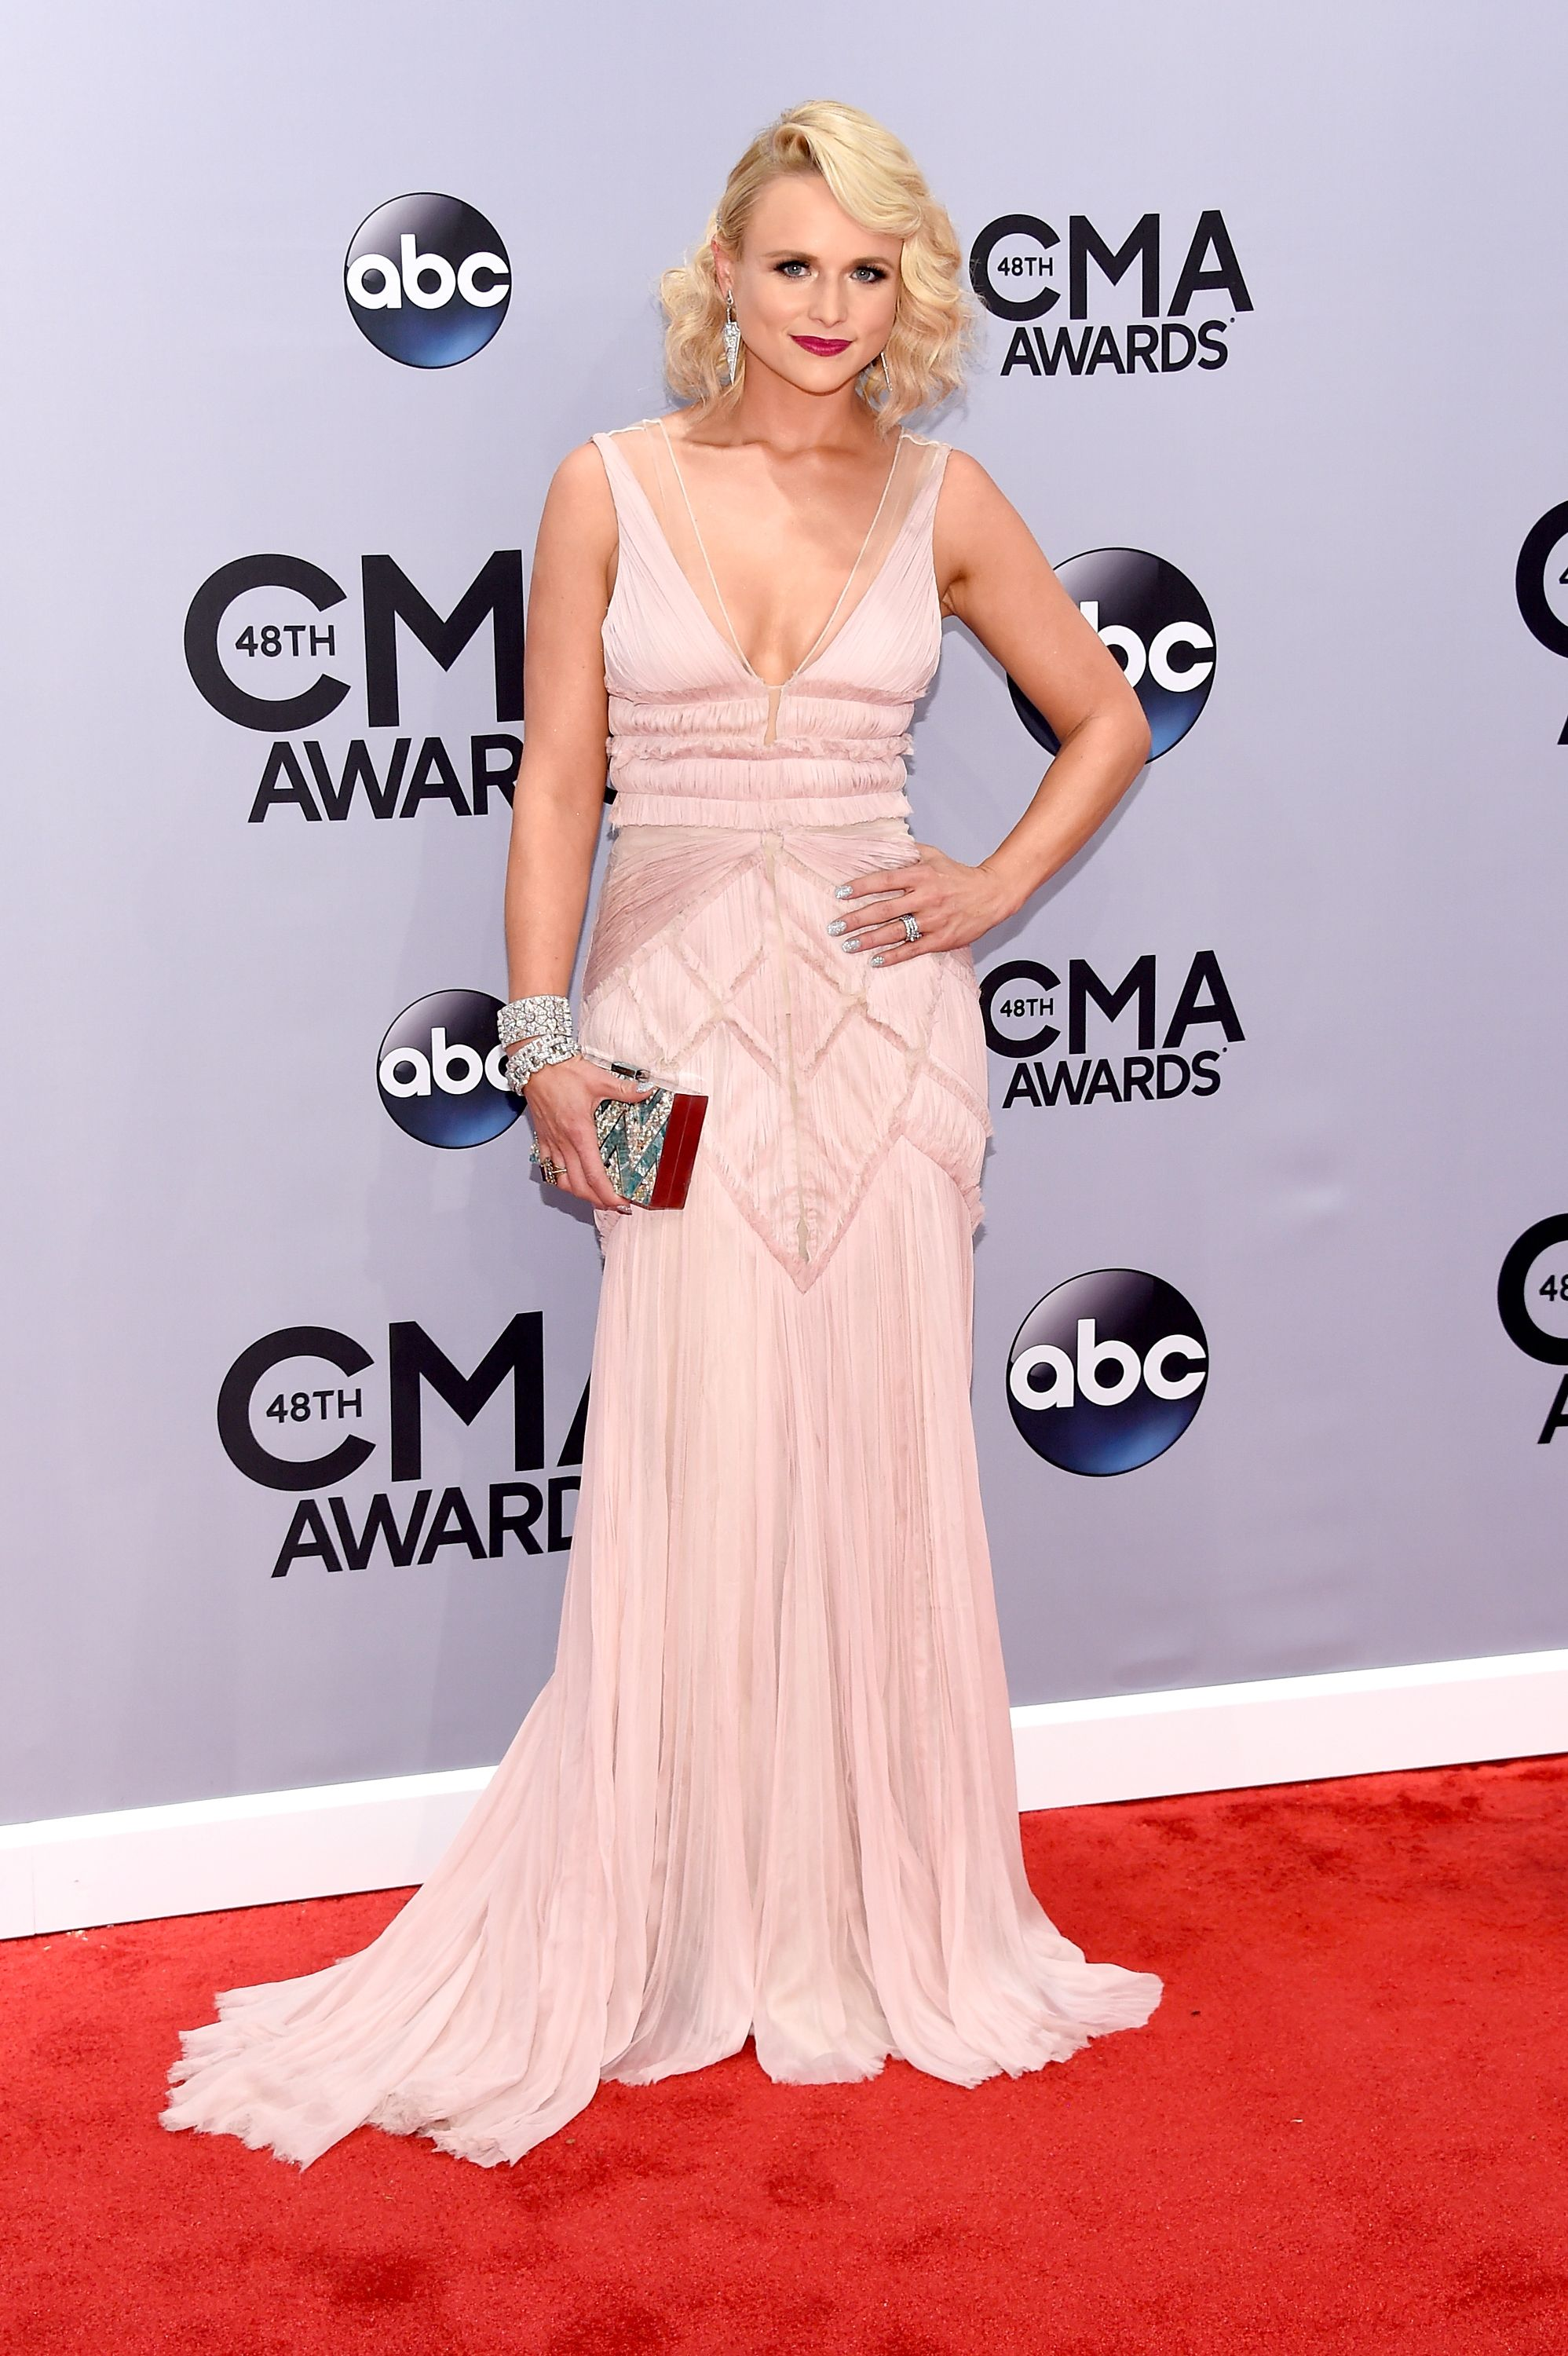 Miranda Lambert during the 48th annual CMA Awards at the Bridgestone Arena on November 5, 2014, in Nashville, Tennessee. | Source: Getty Images